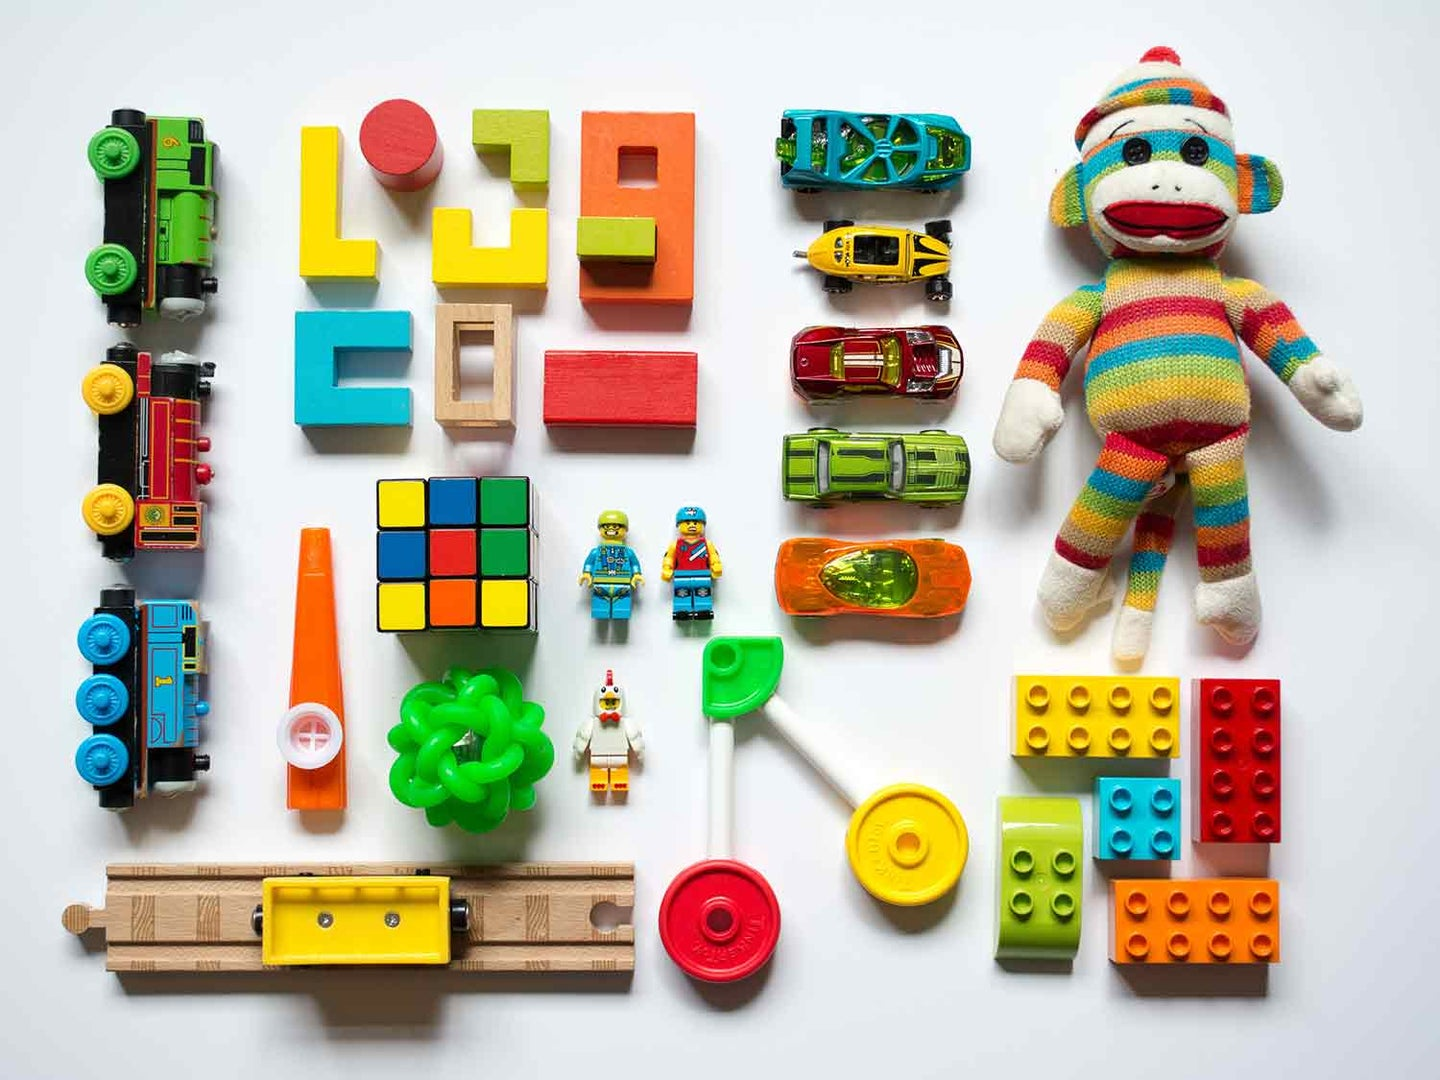 Kids toys spread out on white background.